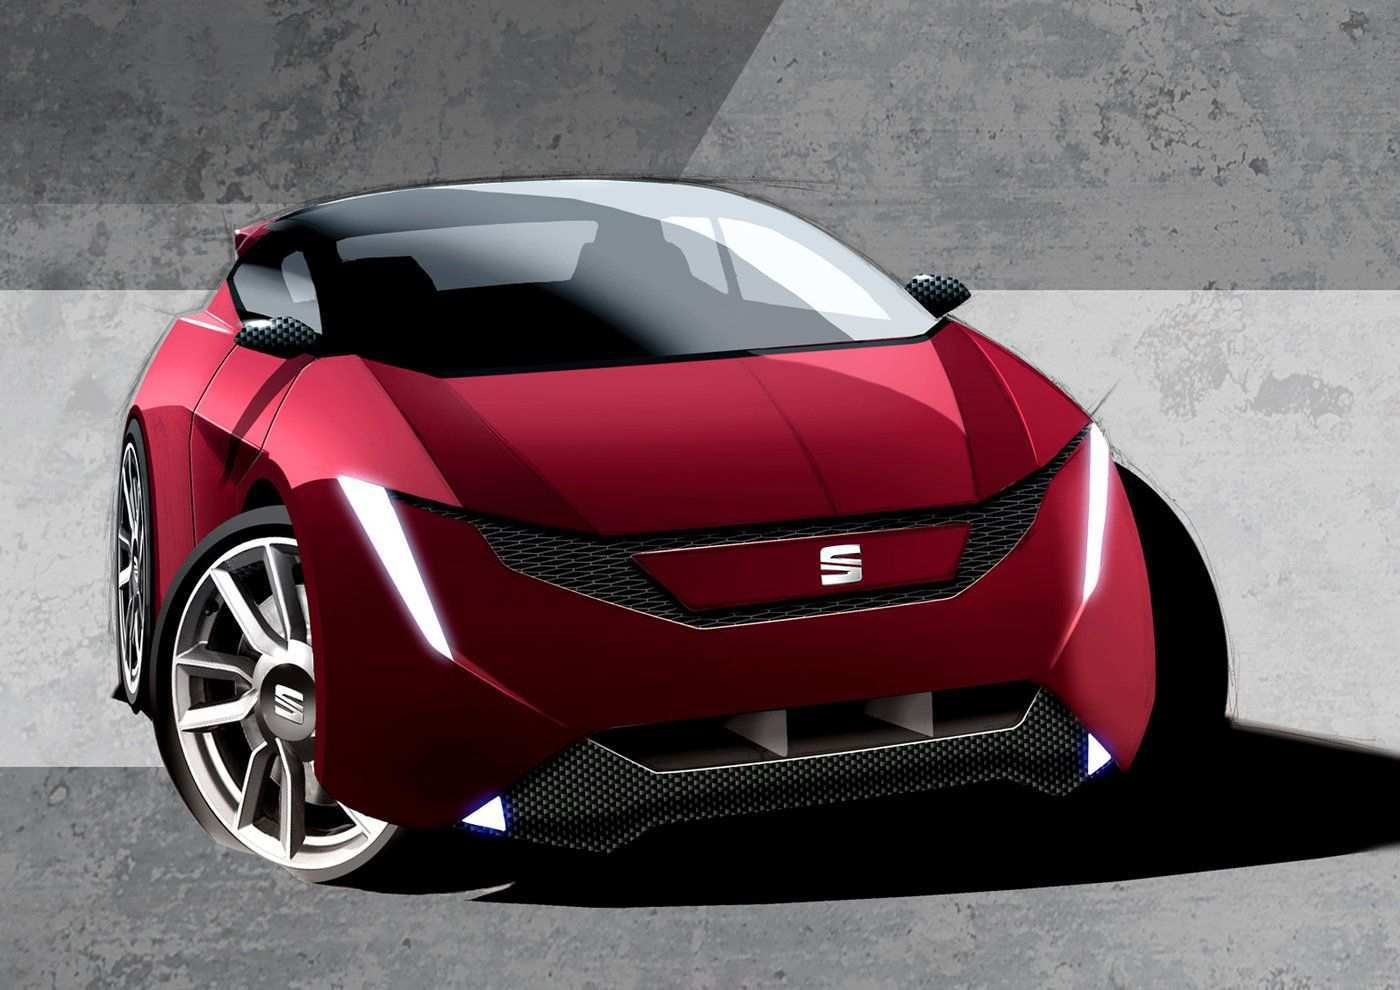 58 Concept of 2020 Seat Ibiza Redesign with 2020 Seat Ibiza